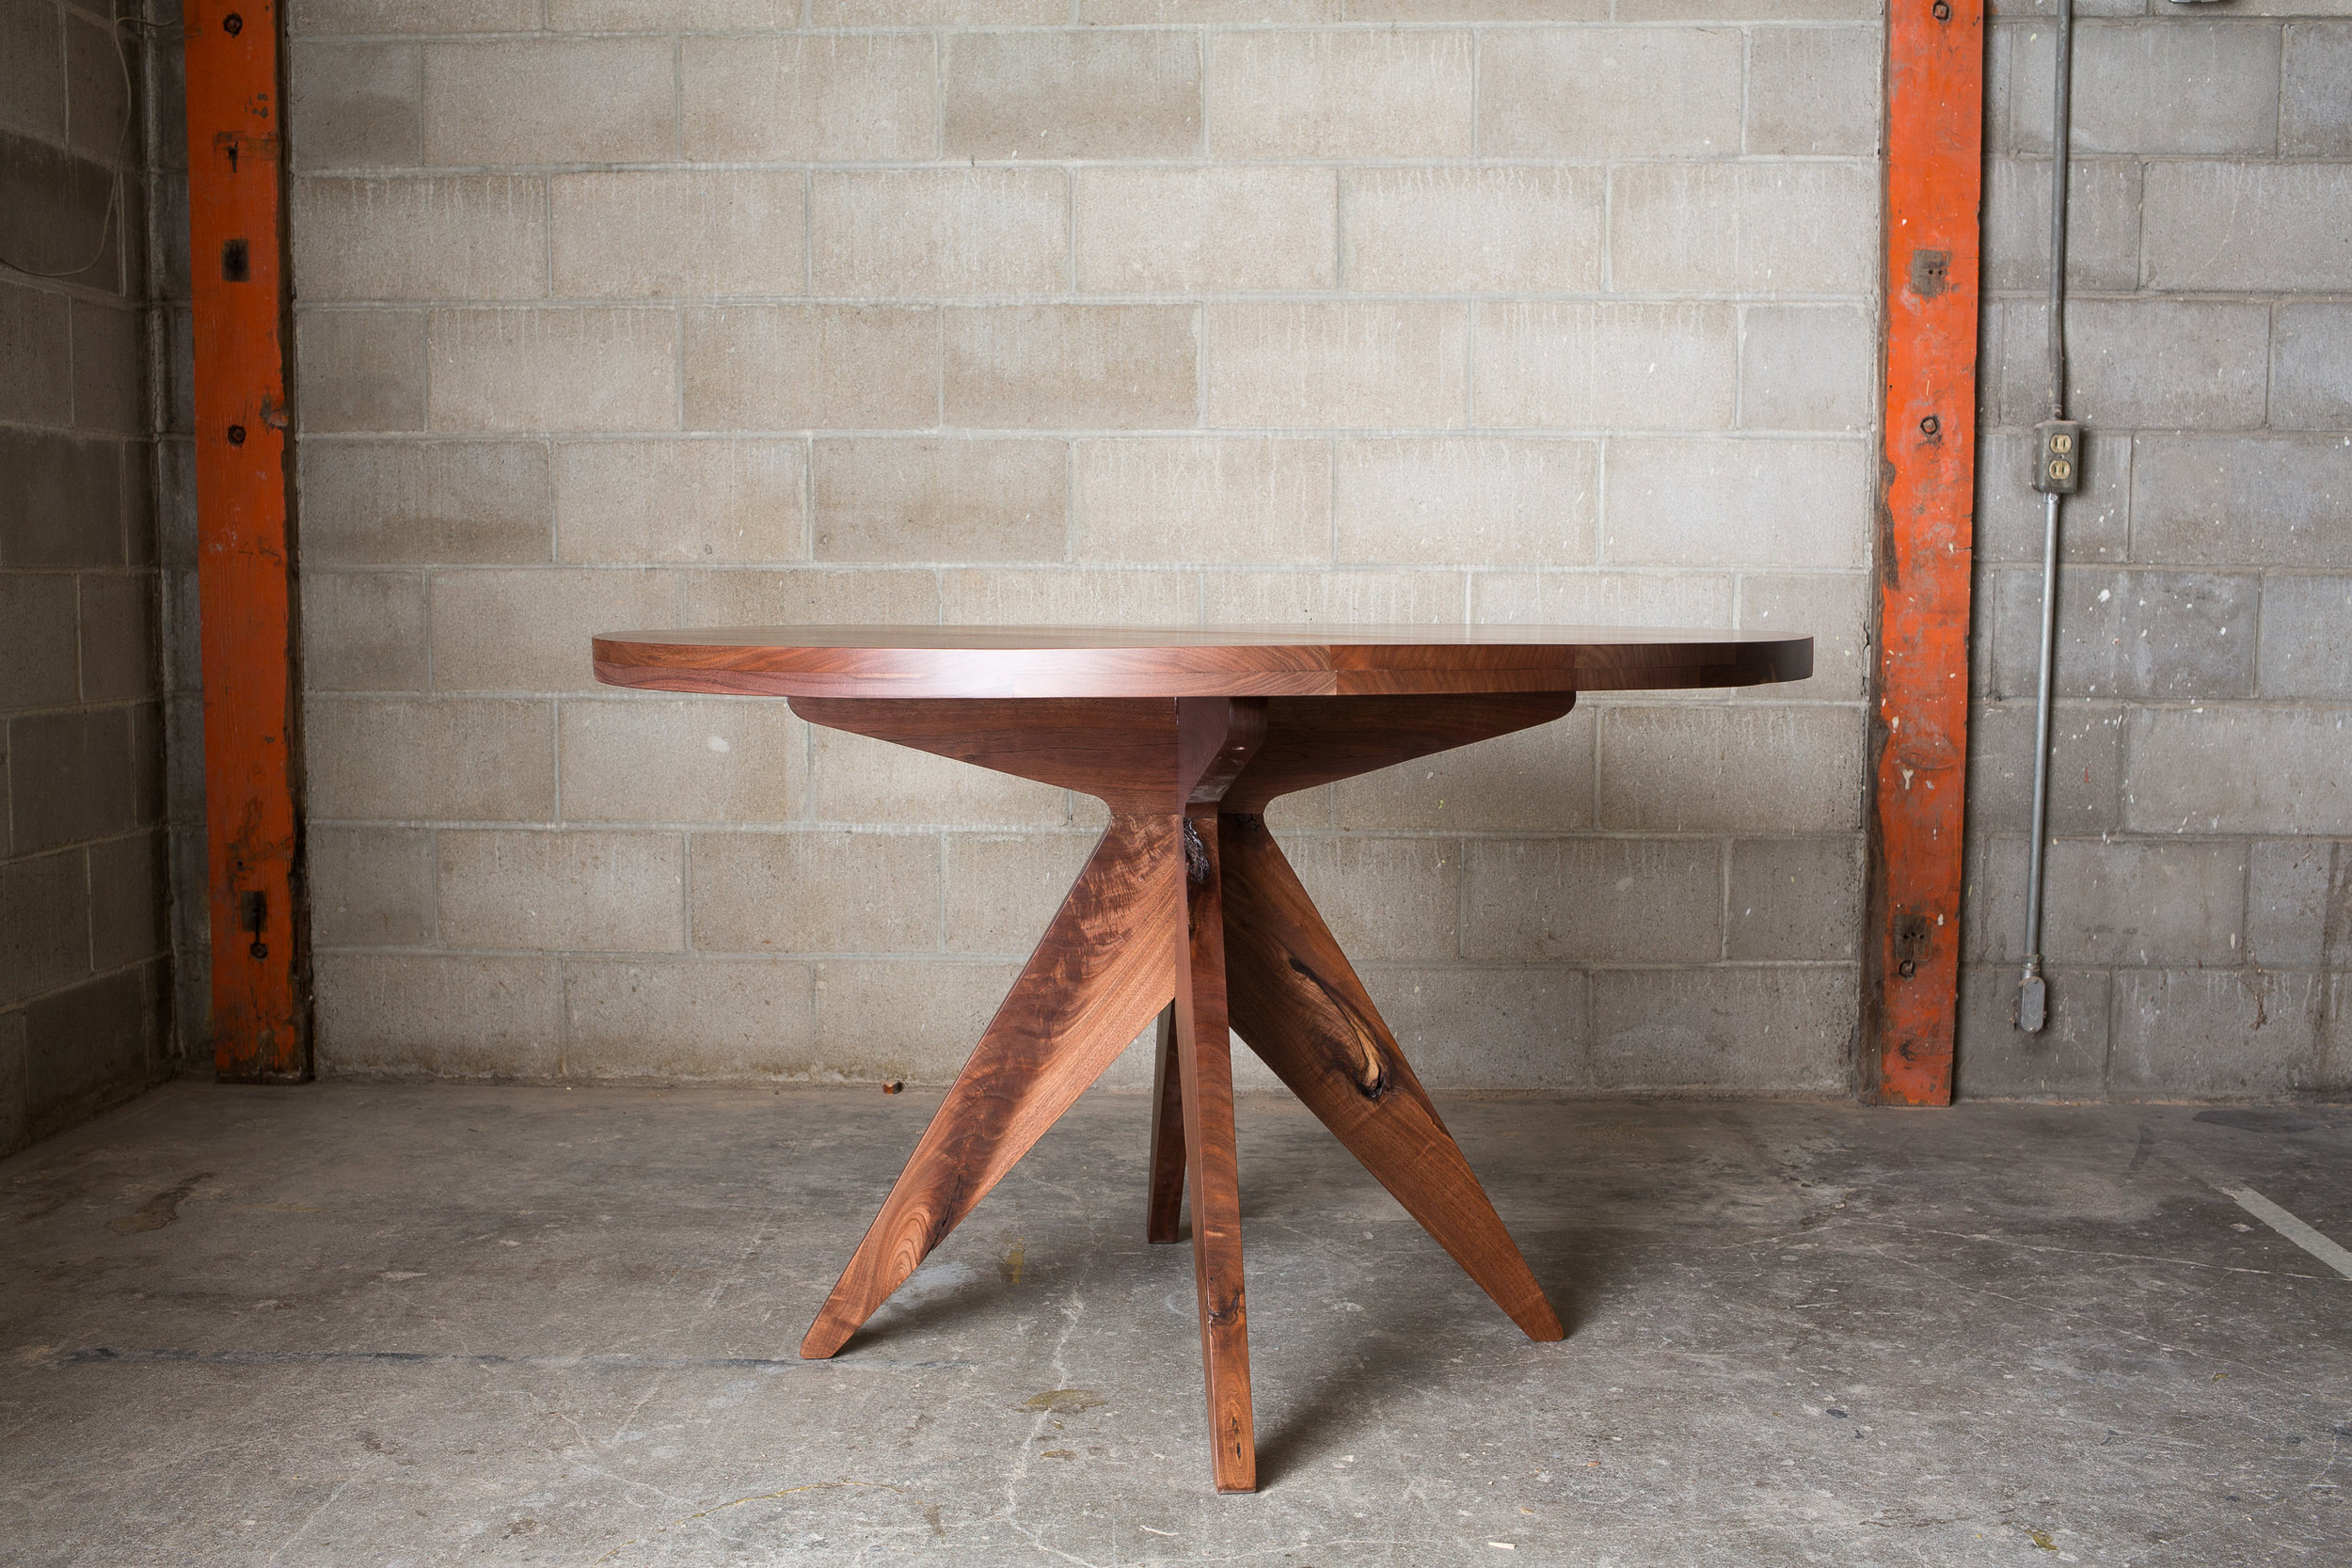 """My most popular table, the Colleen Kitchen Table was inspired by memories of my Grandma's house, and all of the meals, games and conversations our family shared at her table. This table can be sized from 24""""-84"""". Choose from three solid wood options:  Black walnut (shown), Blackened Ash, or Whit Oak.  Or request  custom materials ."""